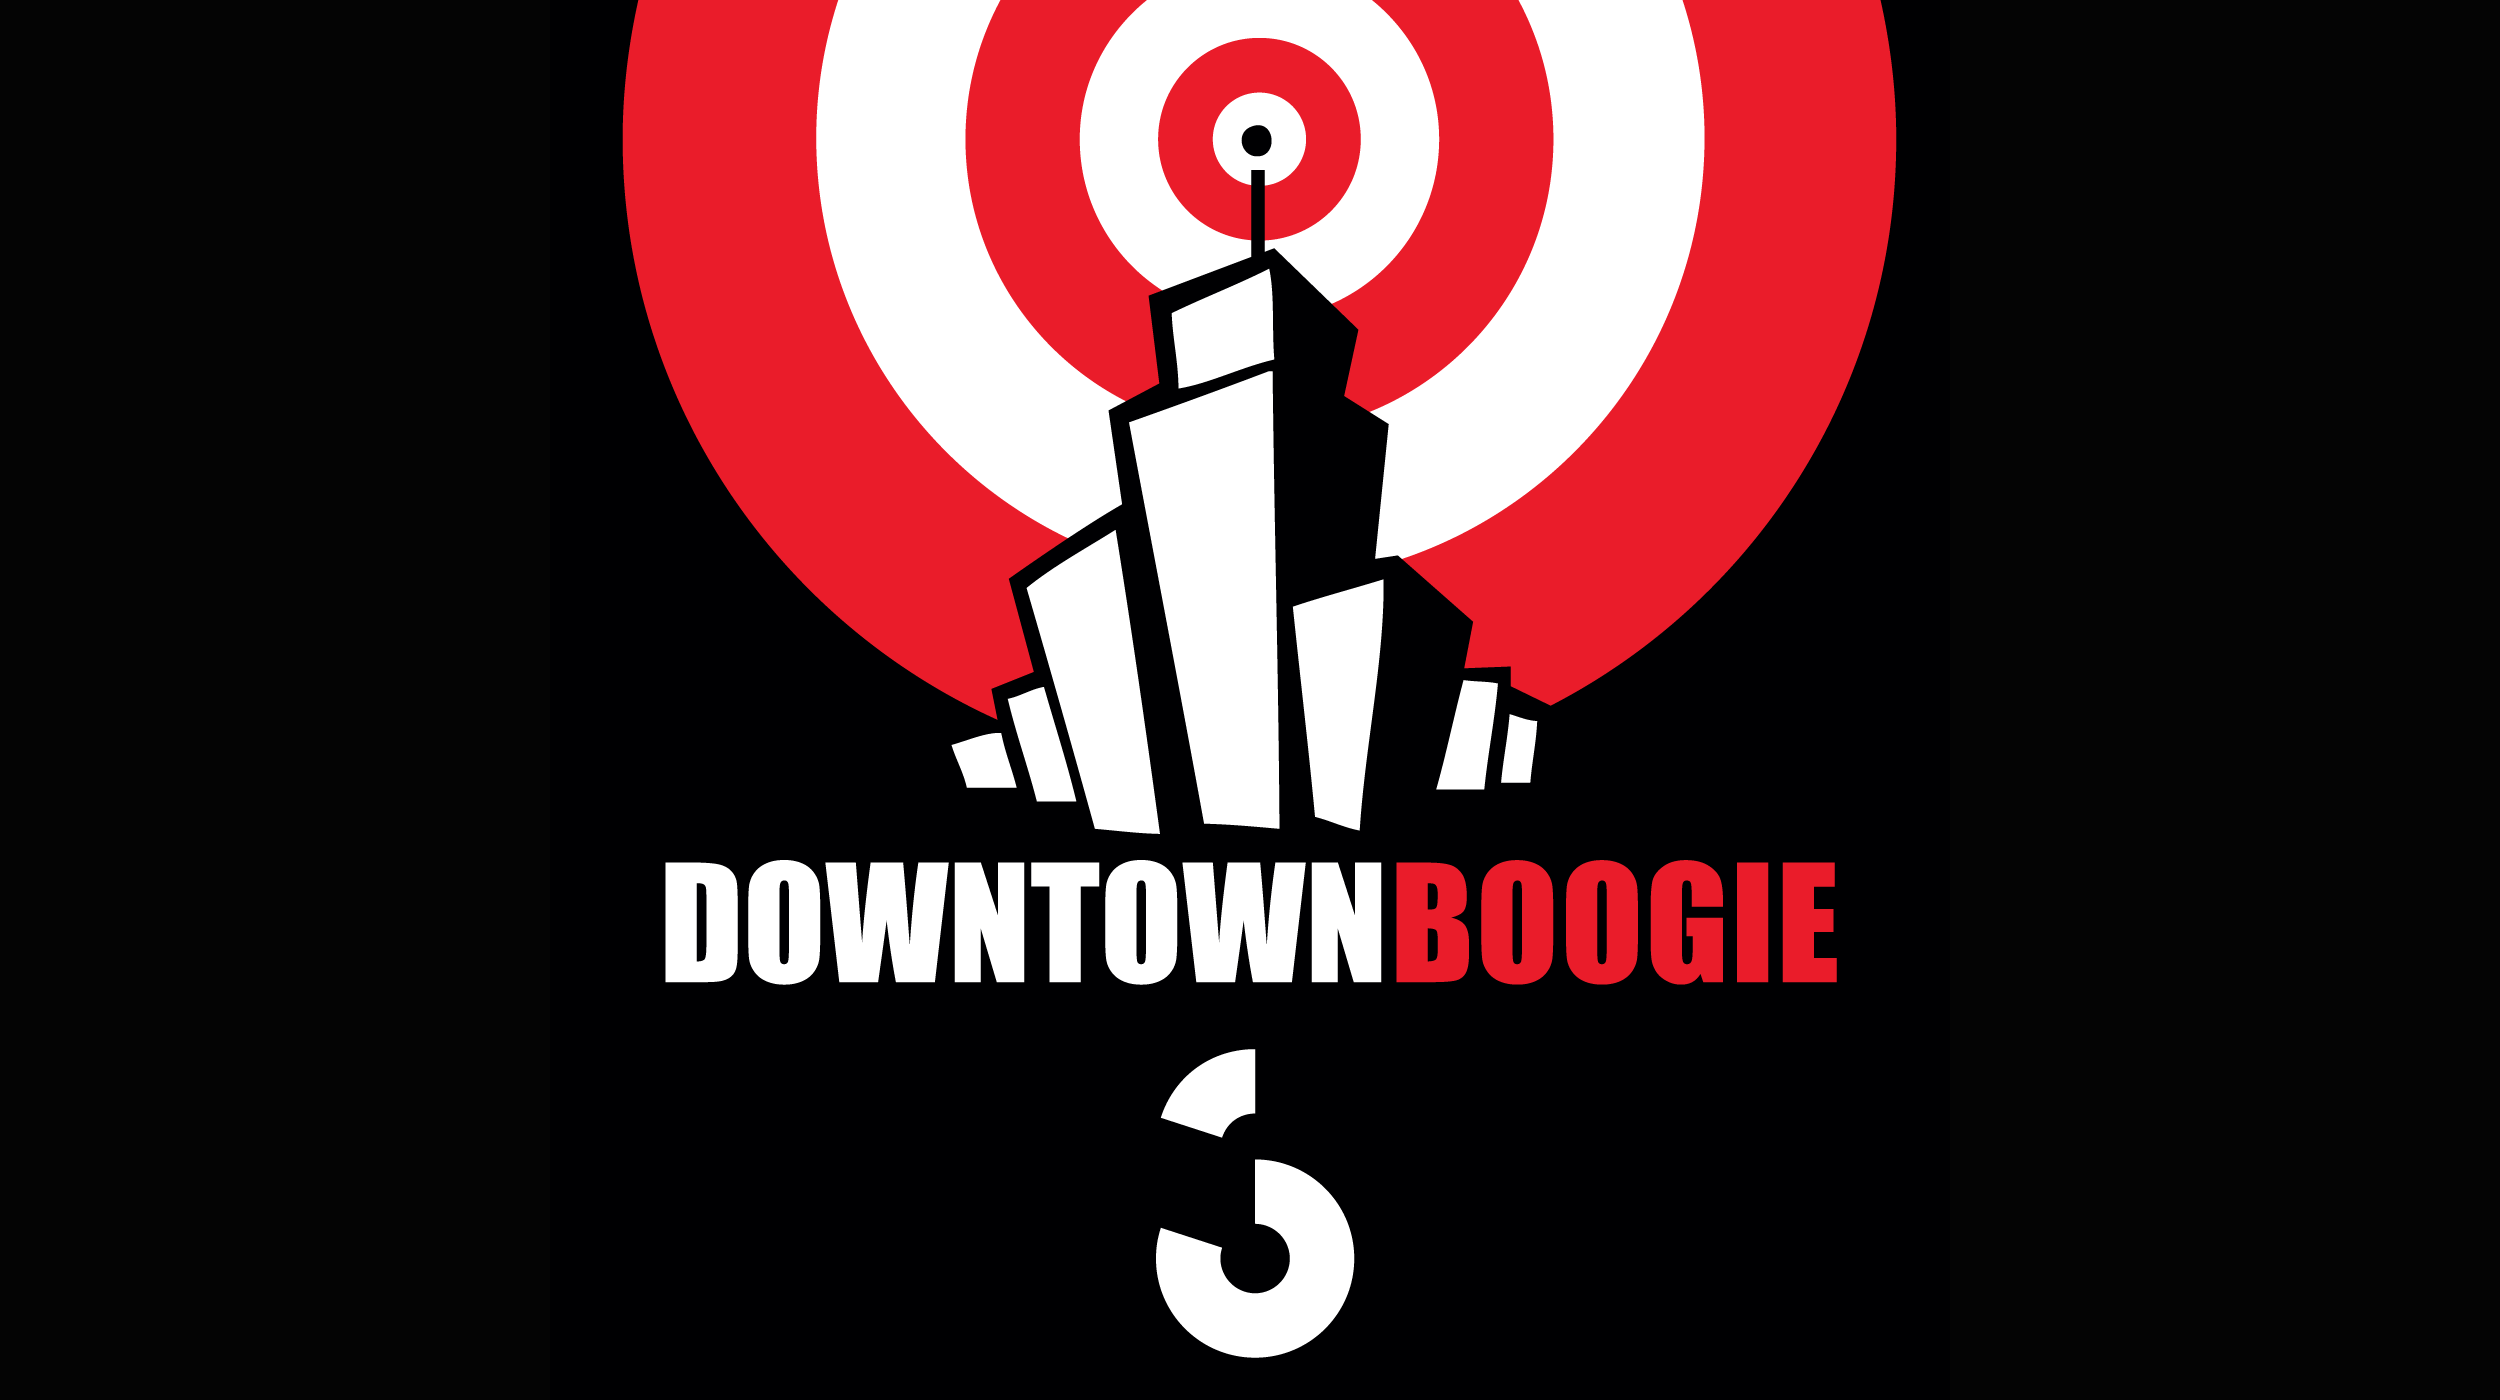 Logo Downtown boogie [RTS]